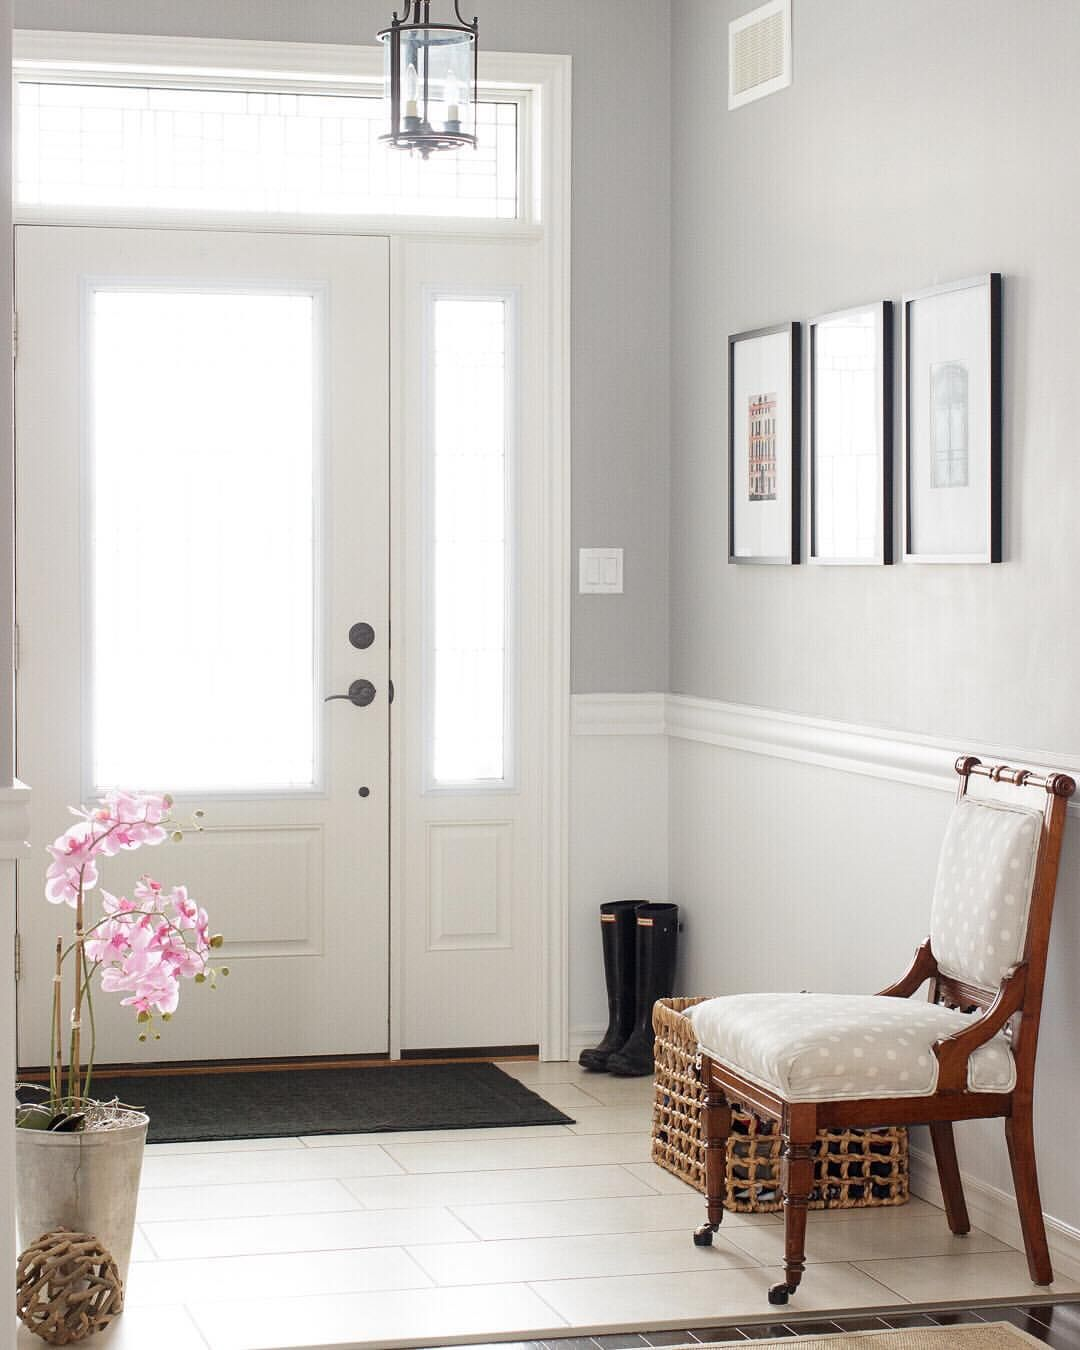 Bright Entry With Chair Rail And Grey Walls.